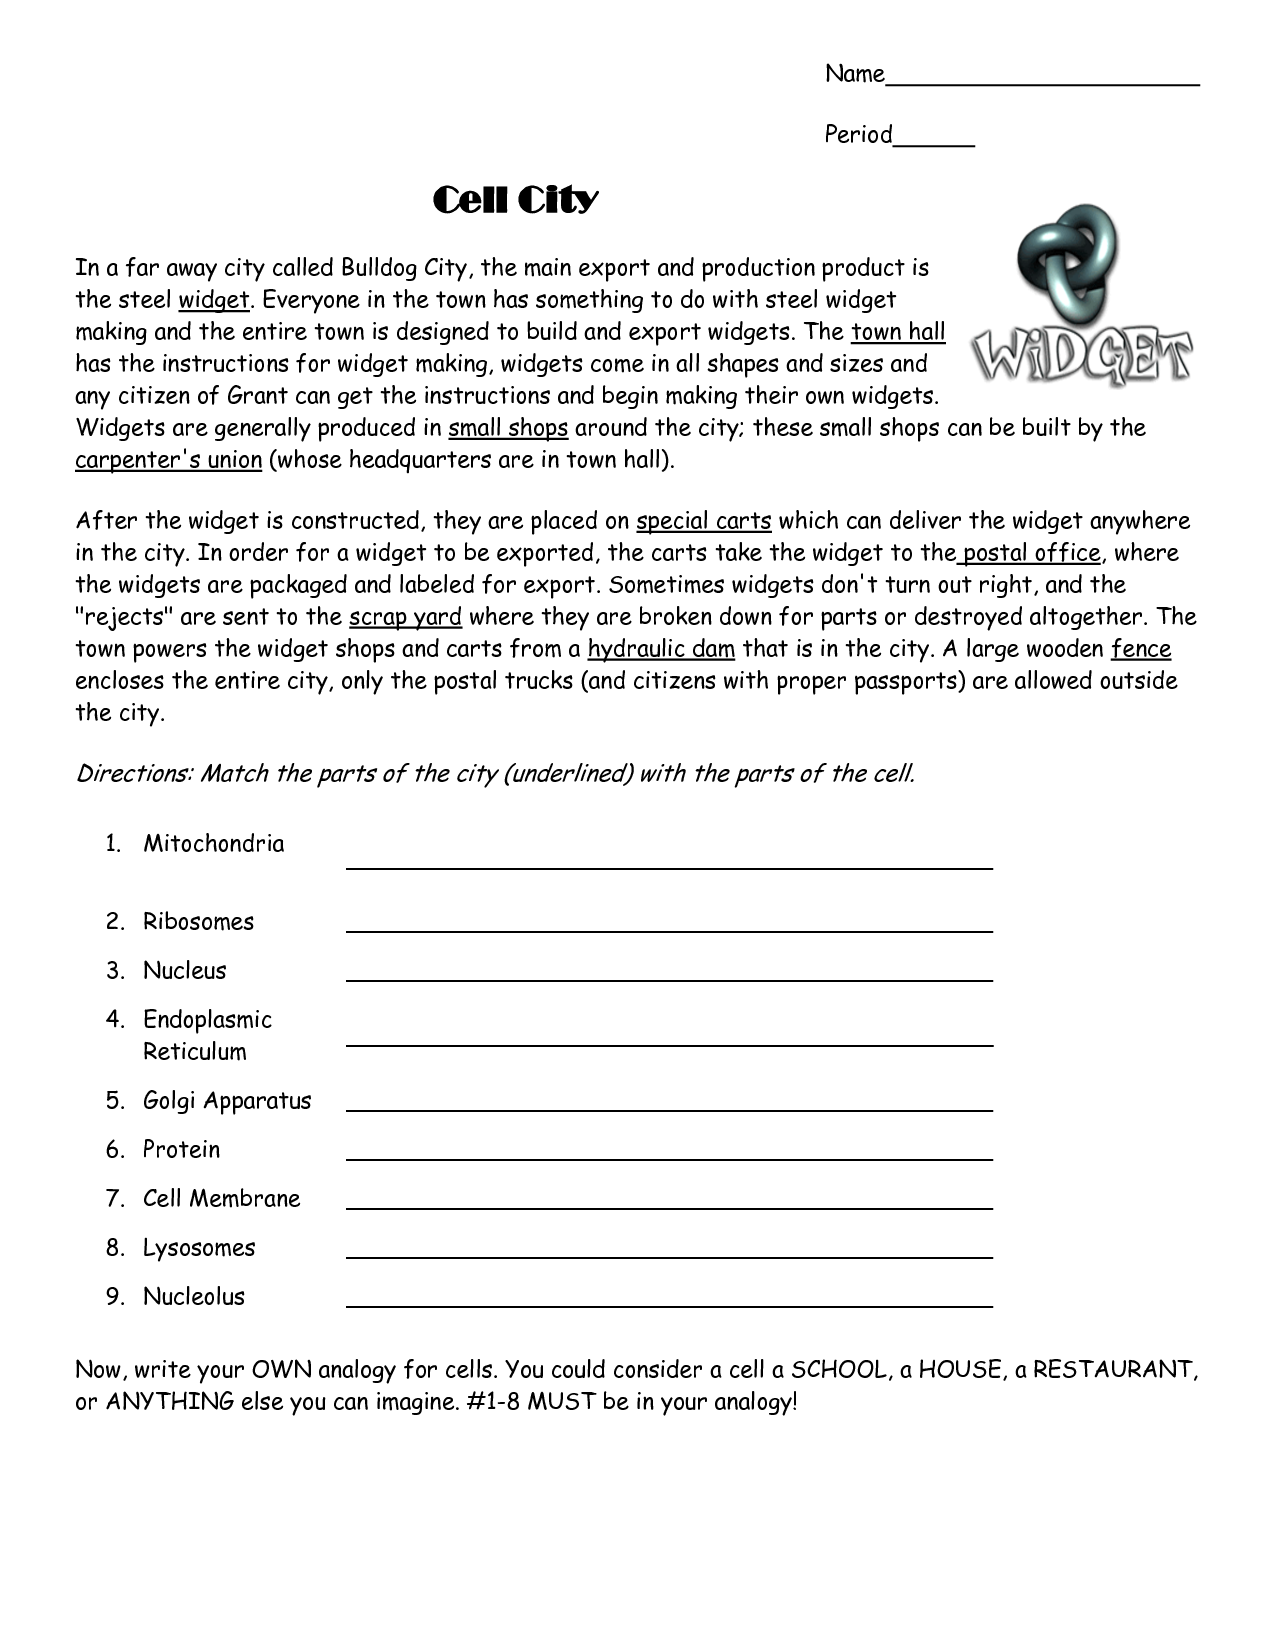 Cell City Analogy Worksheet Pixelpaperskin – Cell City Worksheet